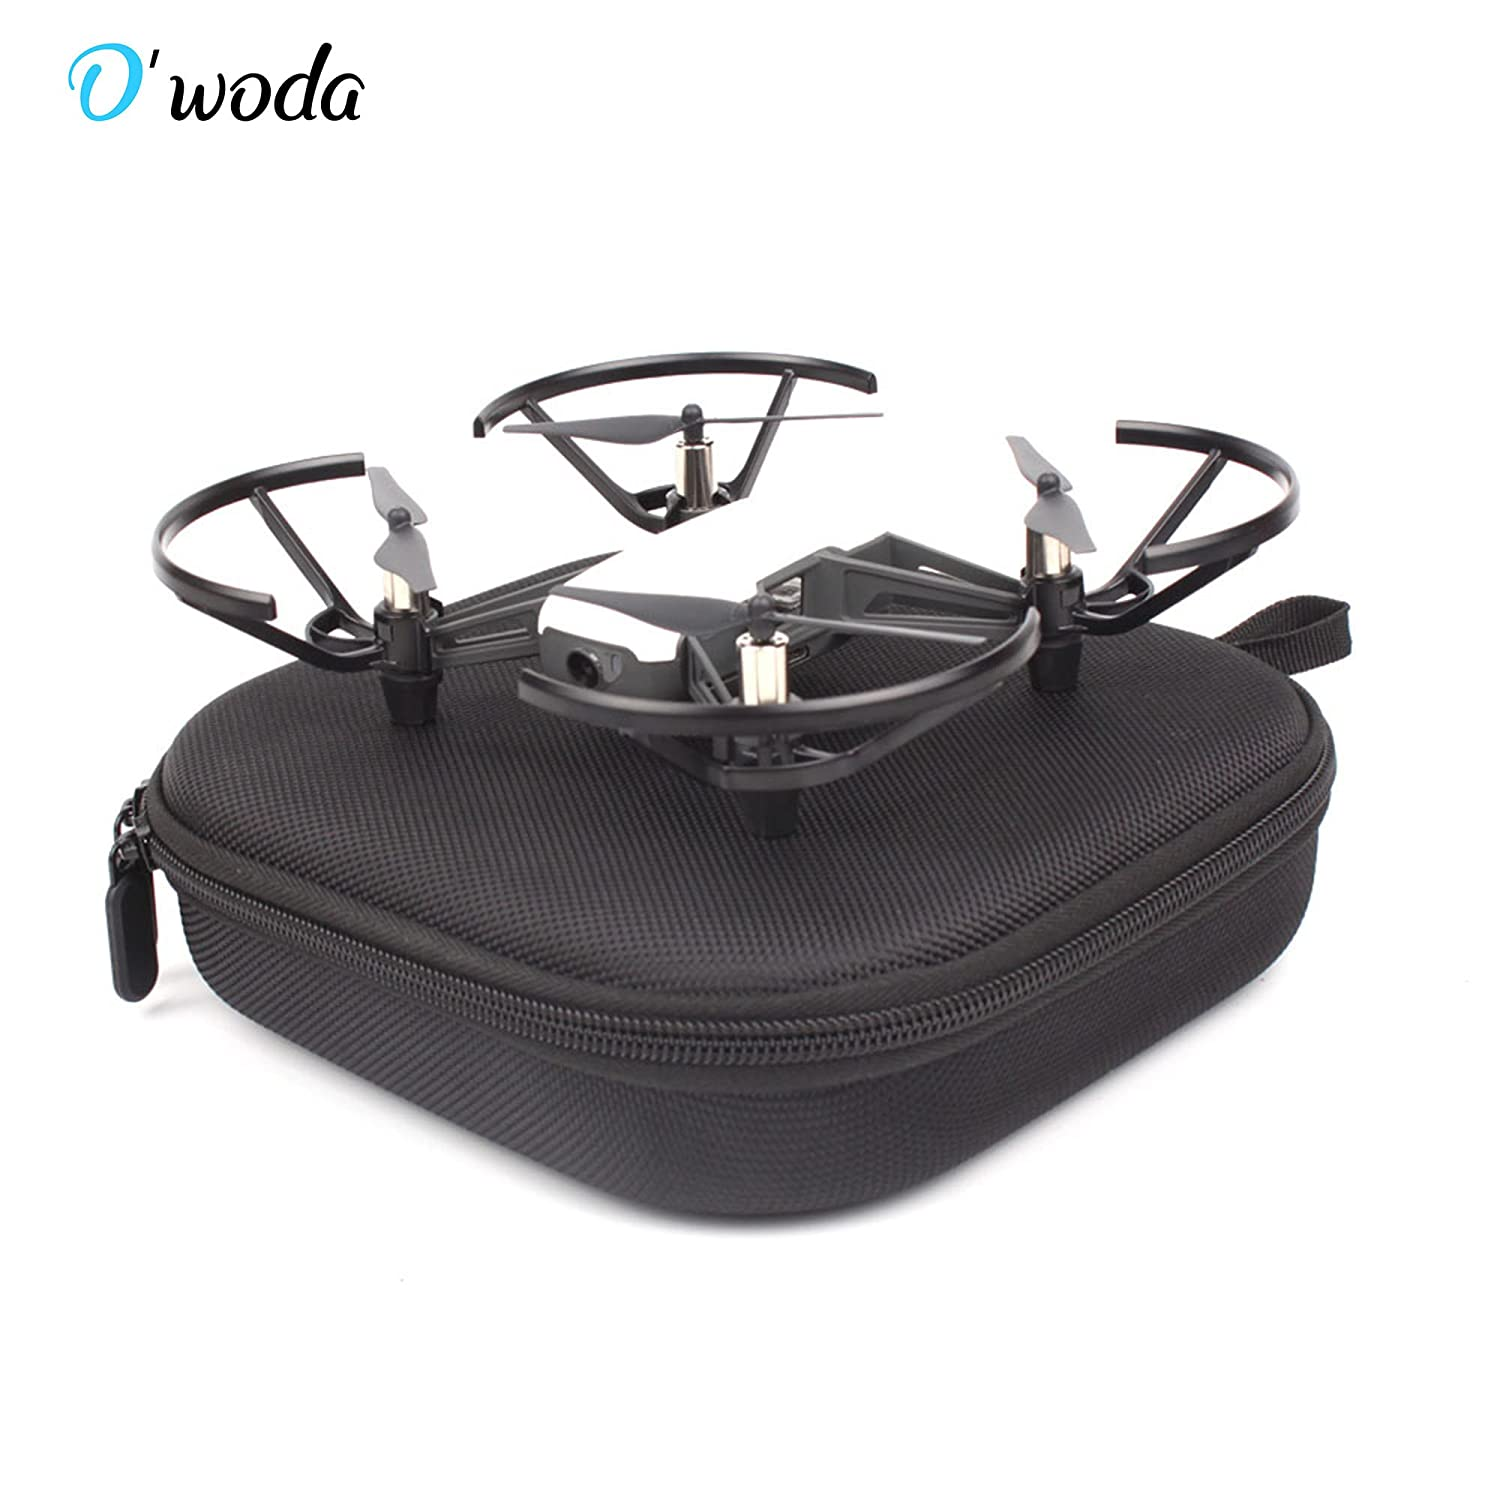 O'woda Handheld Storage Bag Portable Suitcase Carrying Case Backpack for Tello Drone